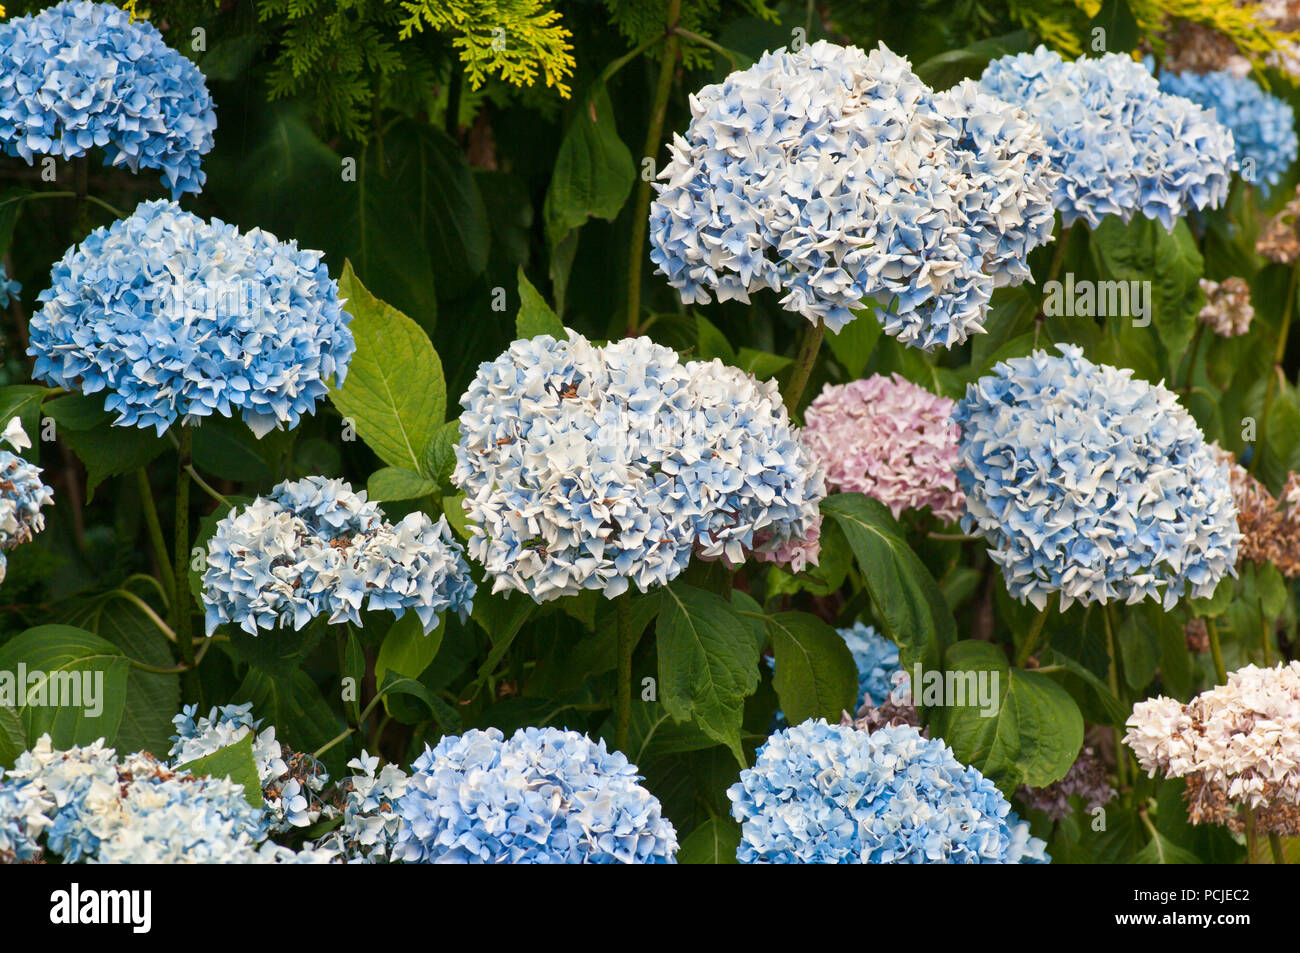 Hydrangea Flower Heads Stock Photos Hydrangea Flower Heads Stock